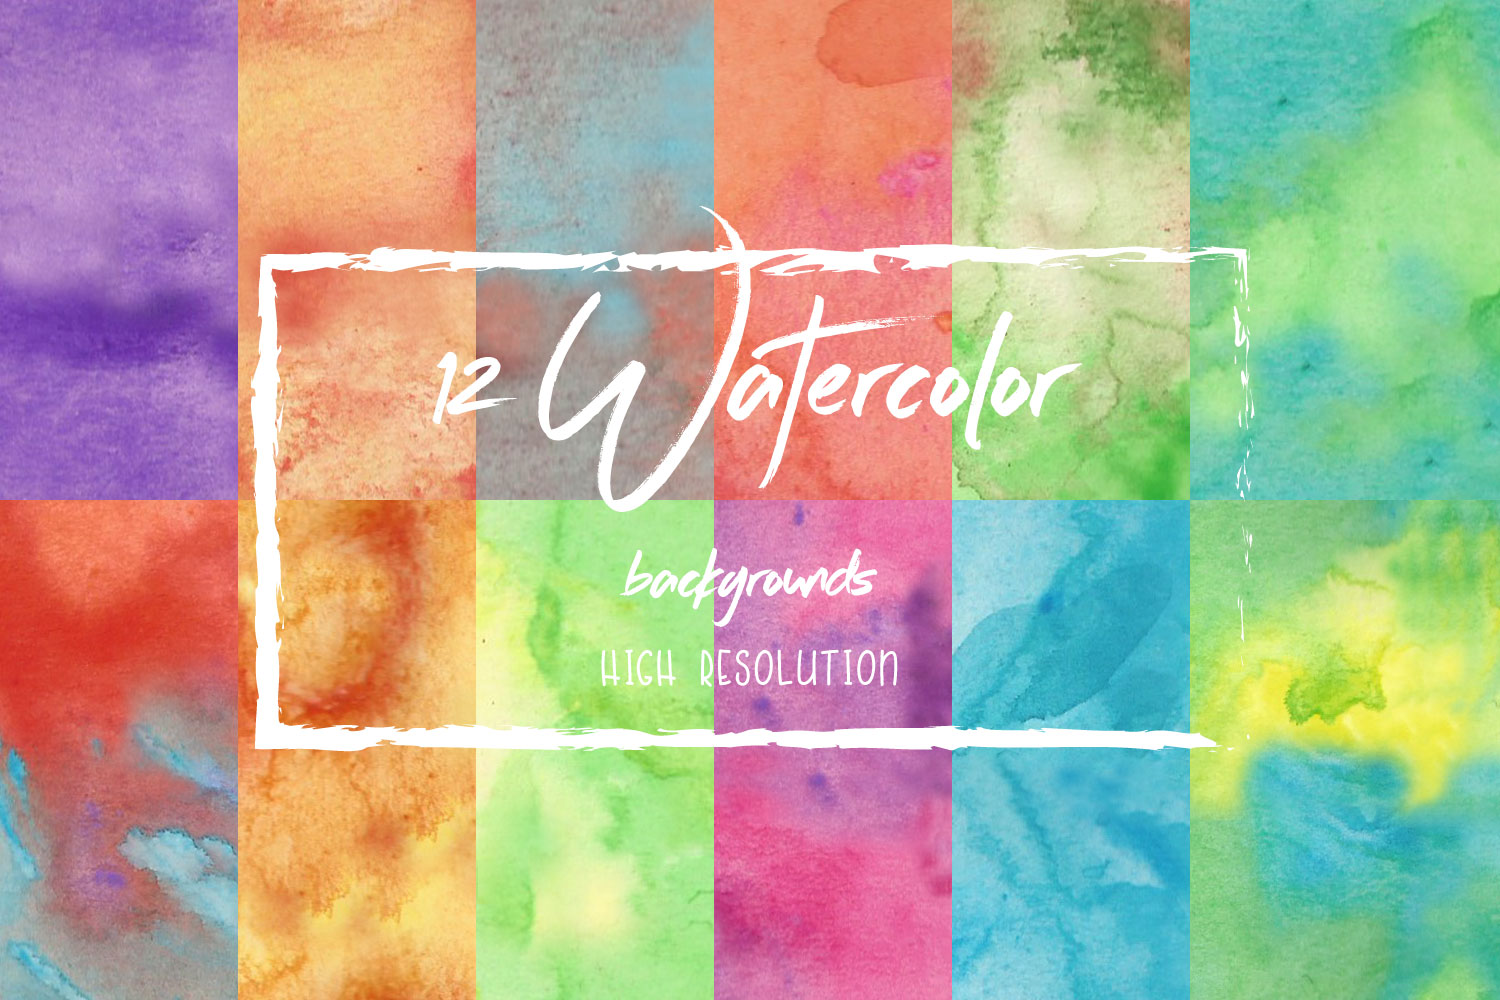 12 Watercolor Backgrounds High Resolution example image 1